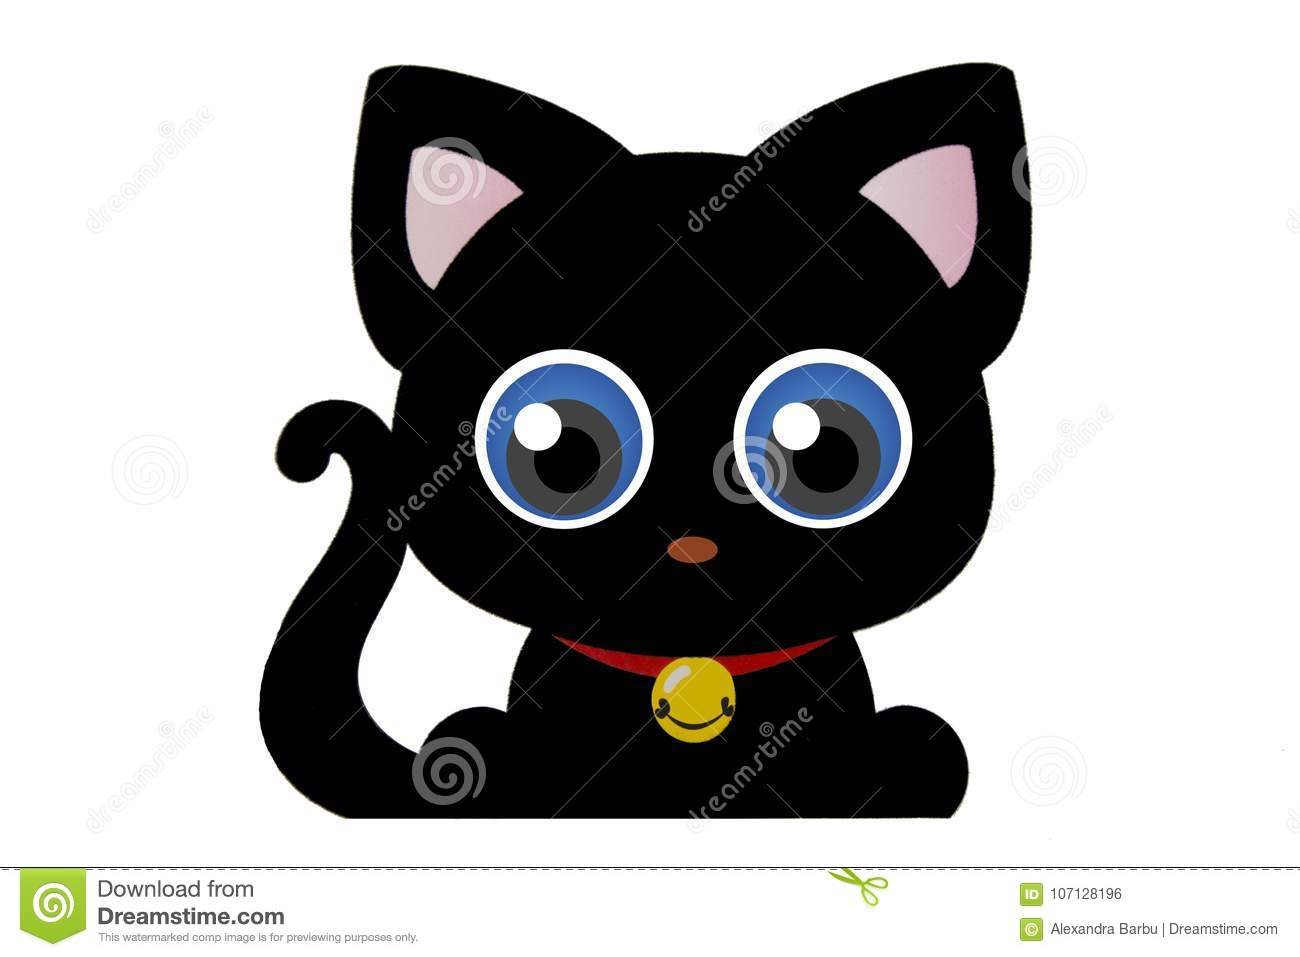 Funny Black Cat Cartoon Silhouette Blue Eyes Stock Illustration Illustration Of Symbol Cartoon 107128196 White and black cats seamless pattern background. https www dreamstime com funny black cat cartoon silhouette blue eyes cute kitty big isolated white curl tail pink ears collar pendant image107128196